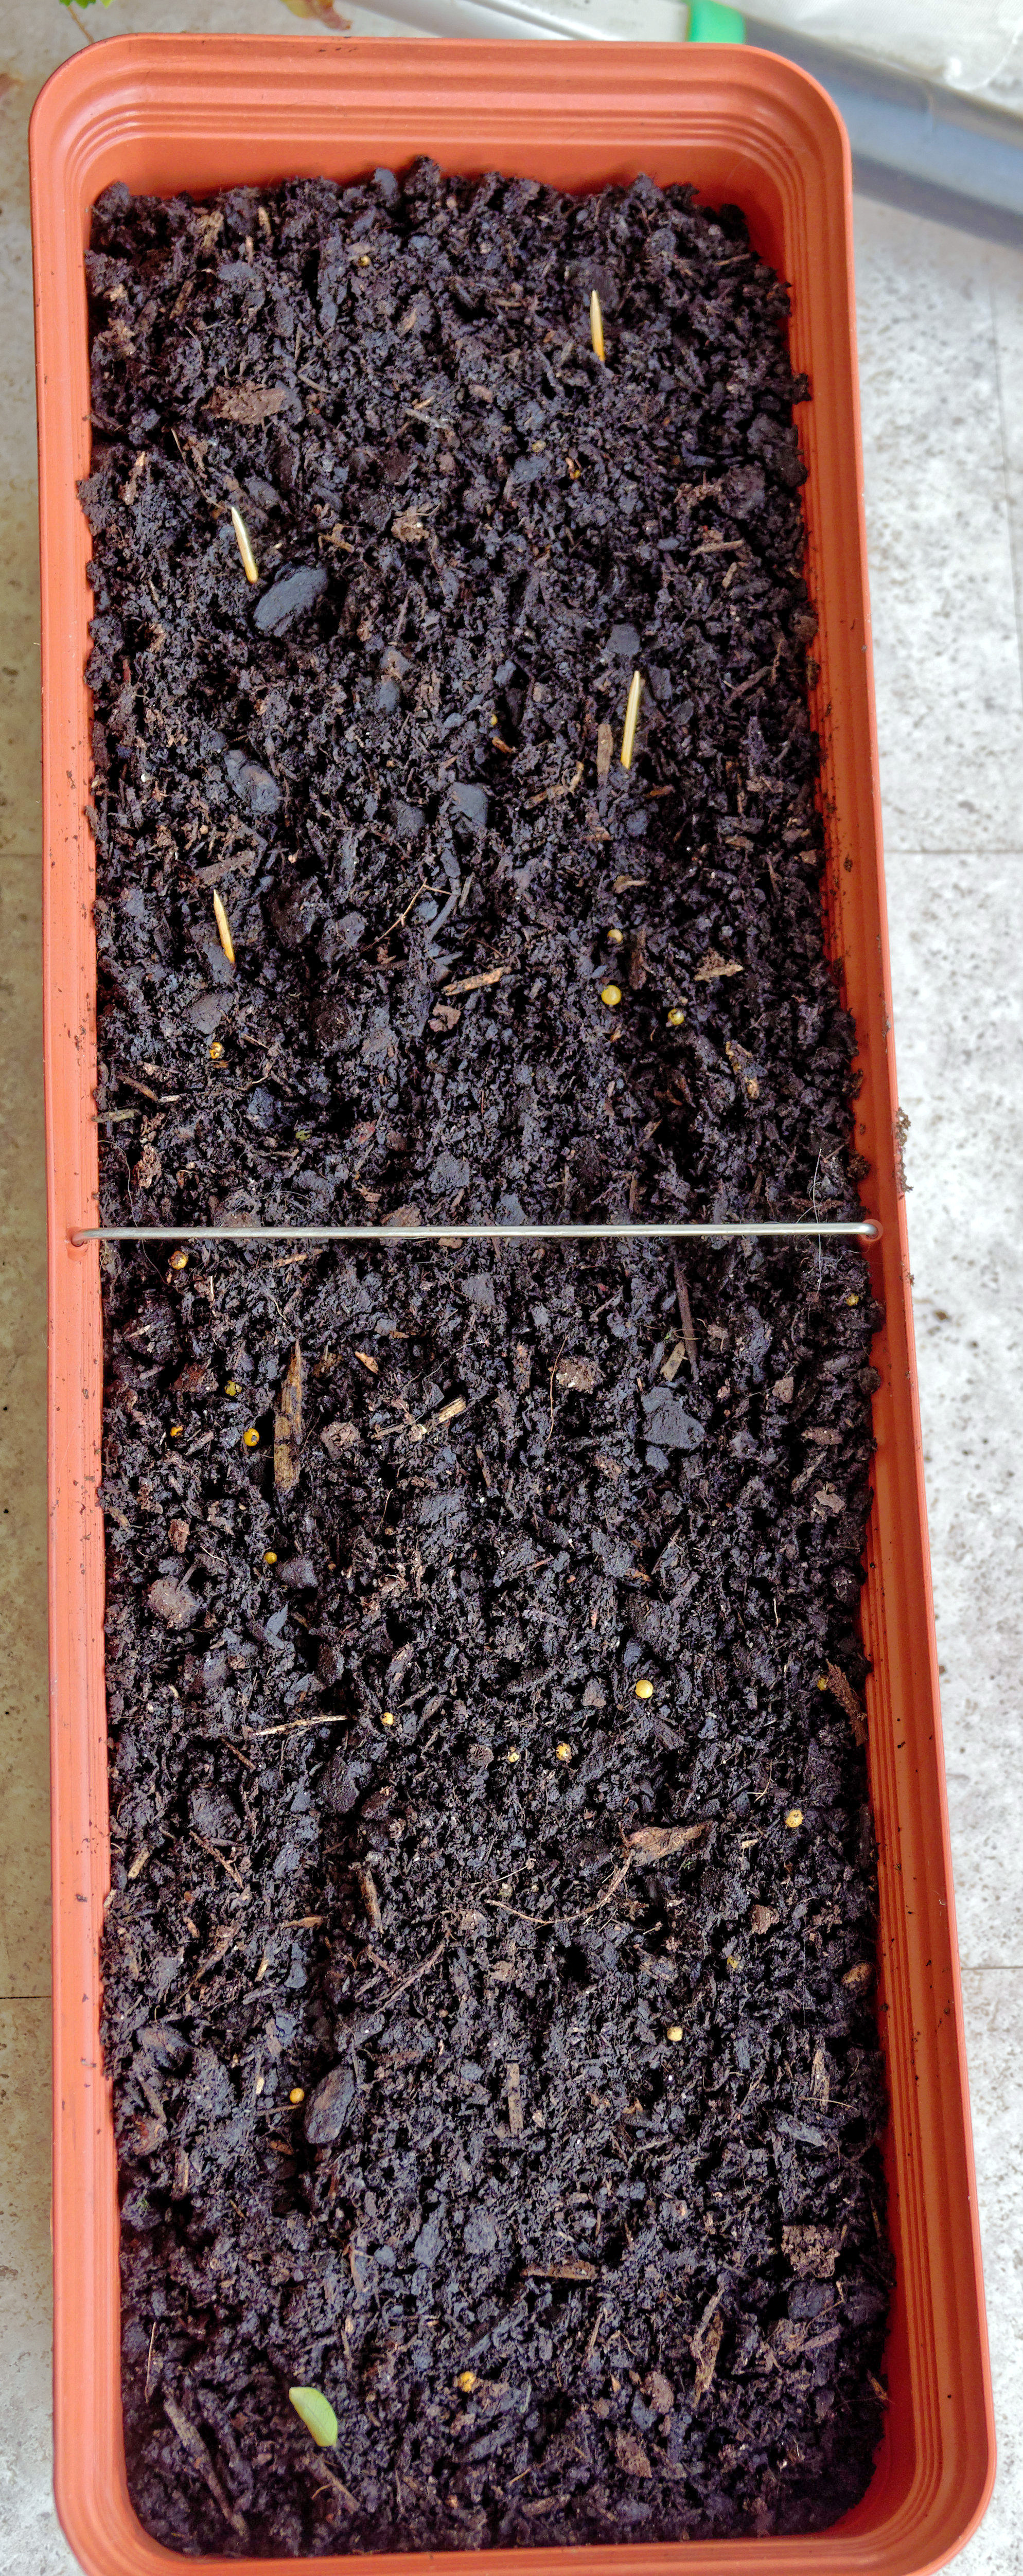 This should be Planting-basil.jpeg.  Is it missing?